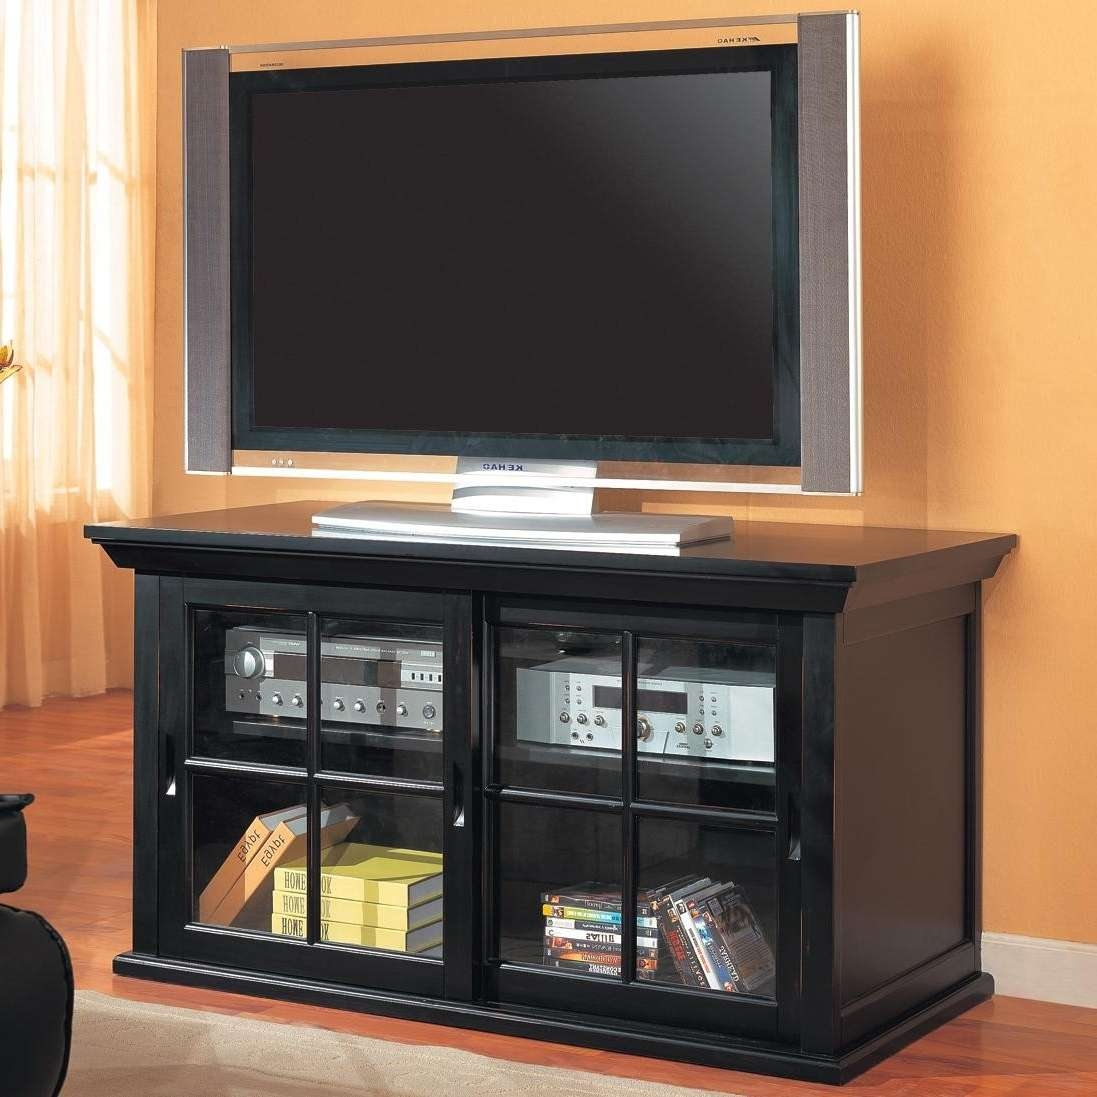 Small Tv Cabinets With Glass Doors • Cabinet Doors Inside Tv Cabinets With Glass Doors (View 18 of 20)